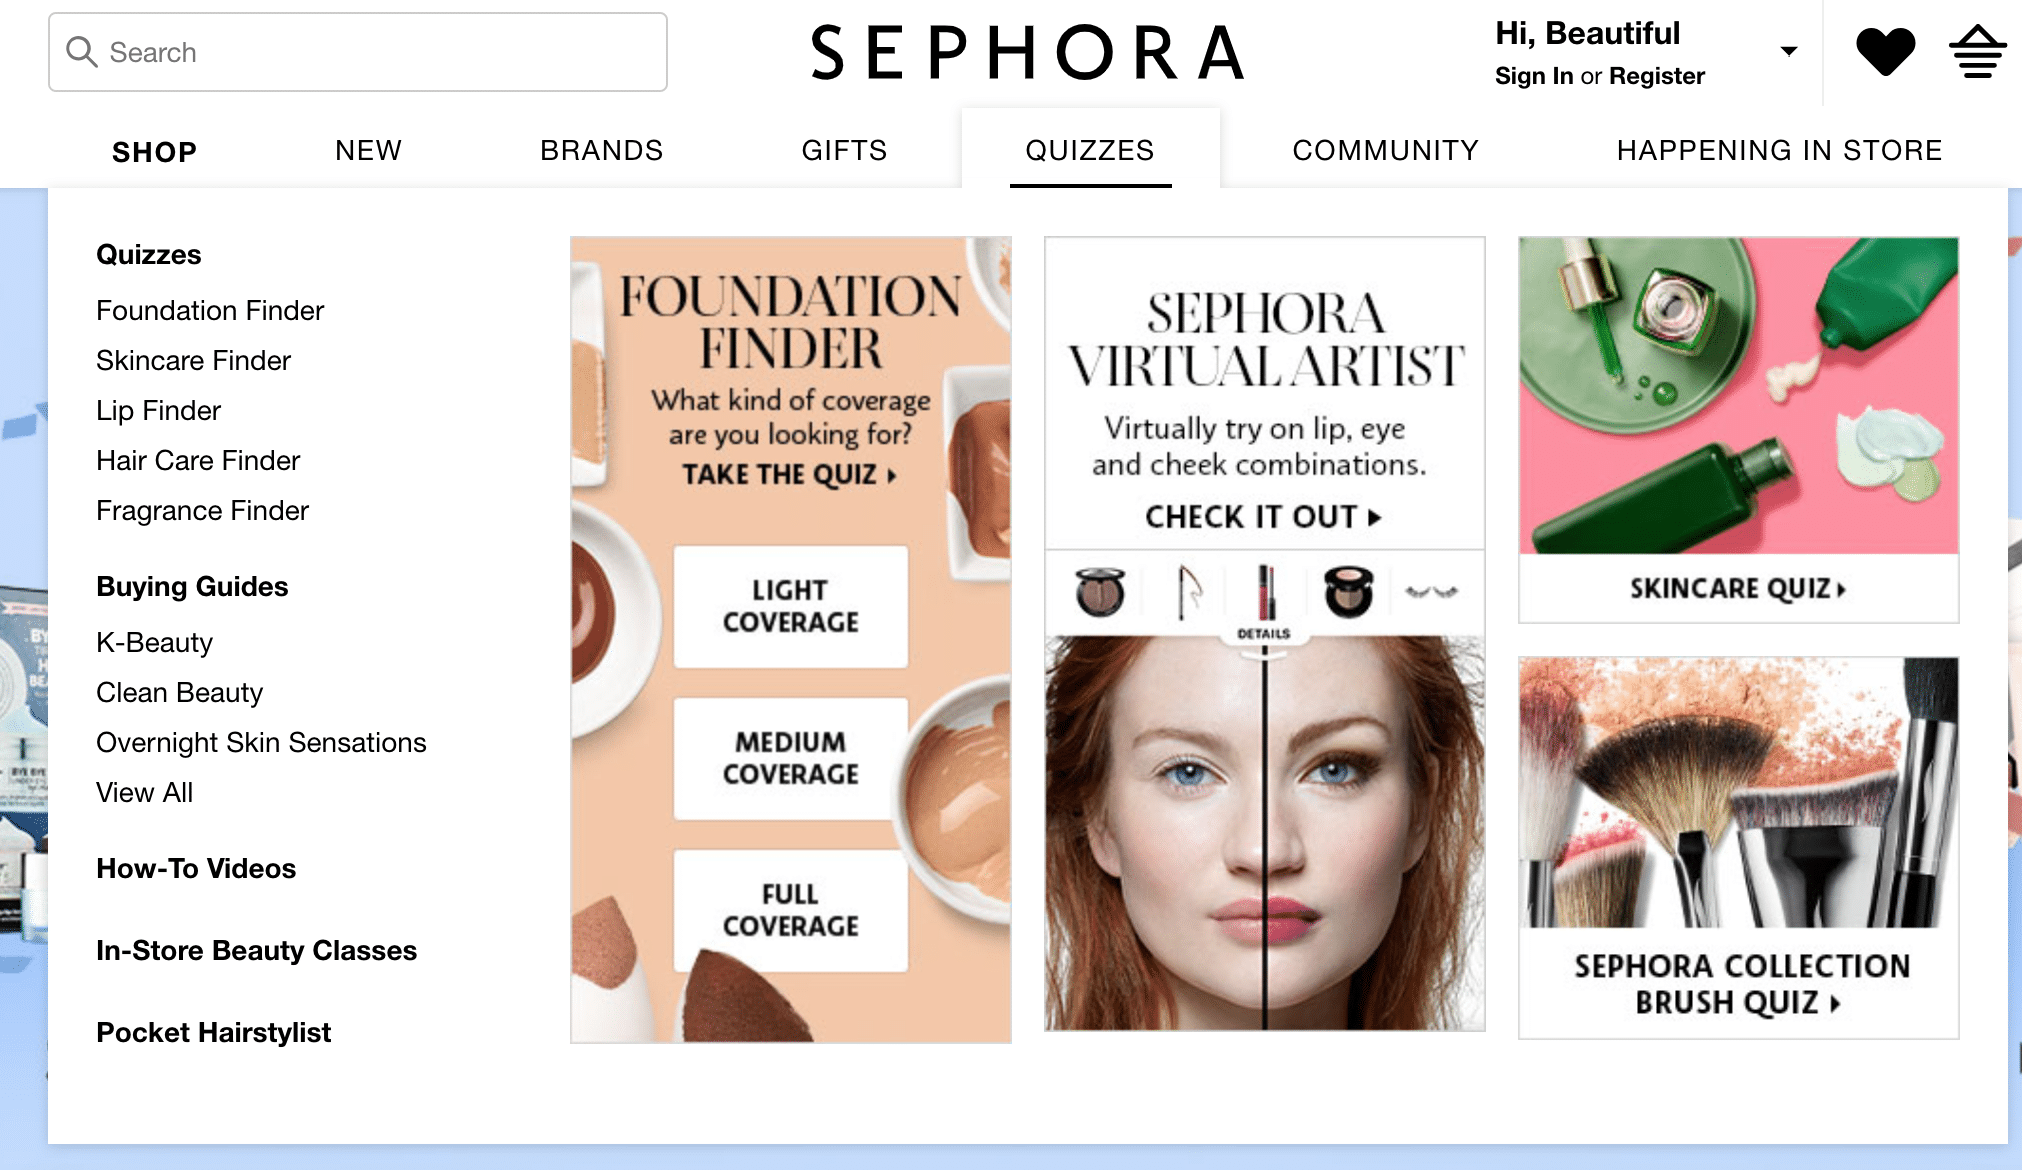 Sephora uses quizzes to find the right products